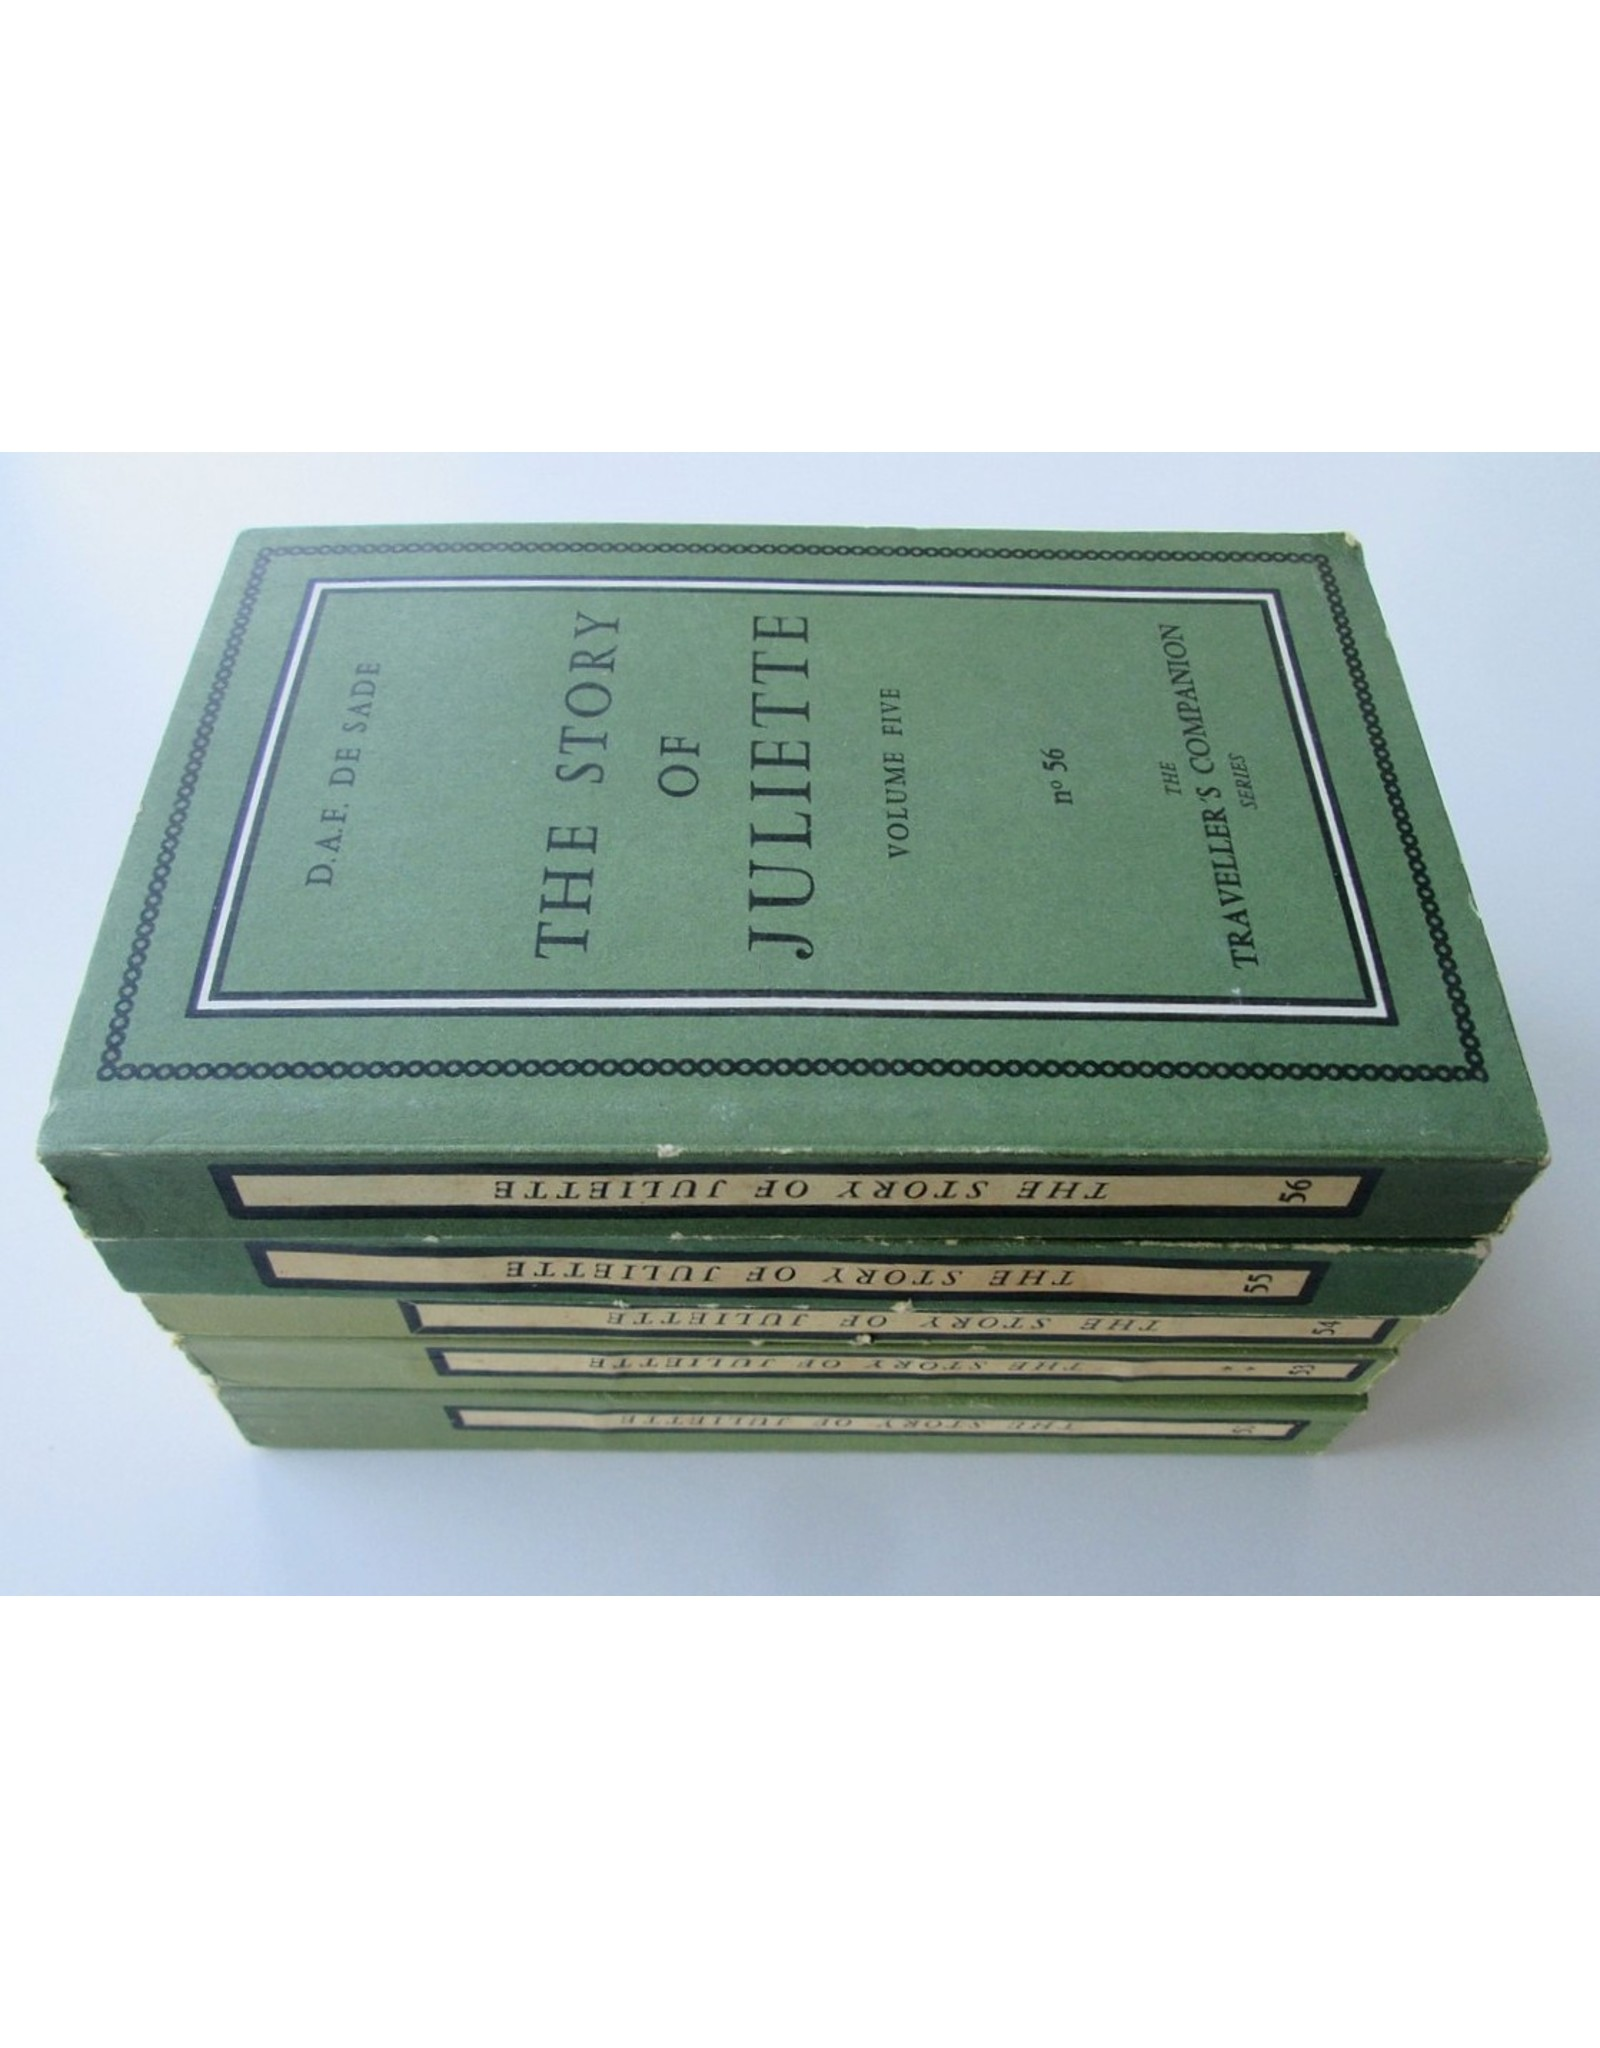 D.A.F. De Sade - The Story of Juliette or: Vice Amply Rewarded. Being an English rendering of the French by Pieralessandro Casavini in five volumes